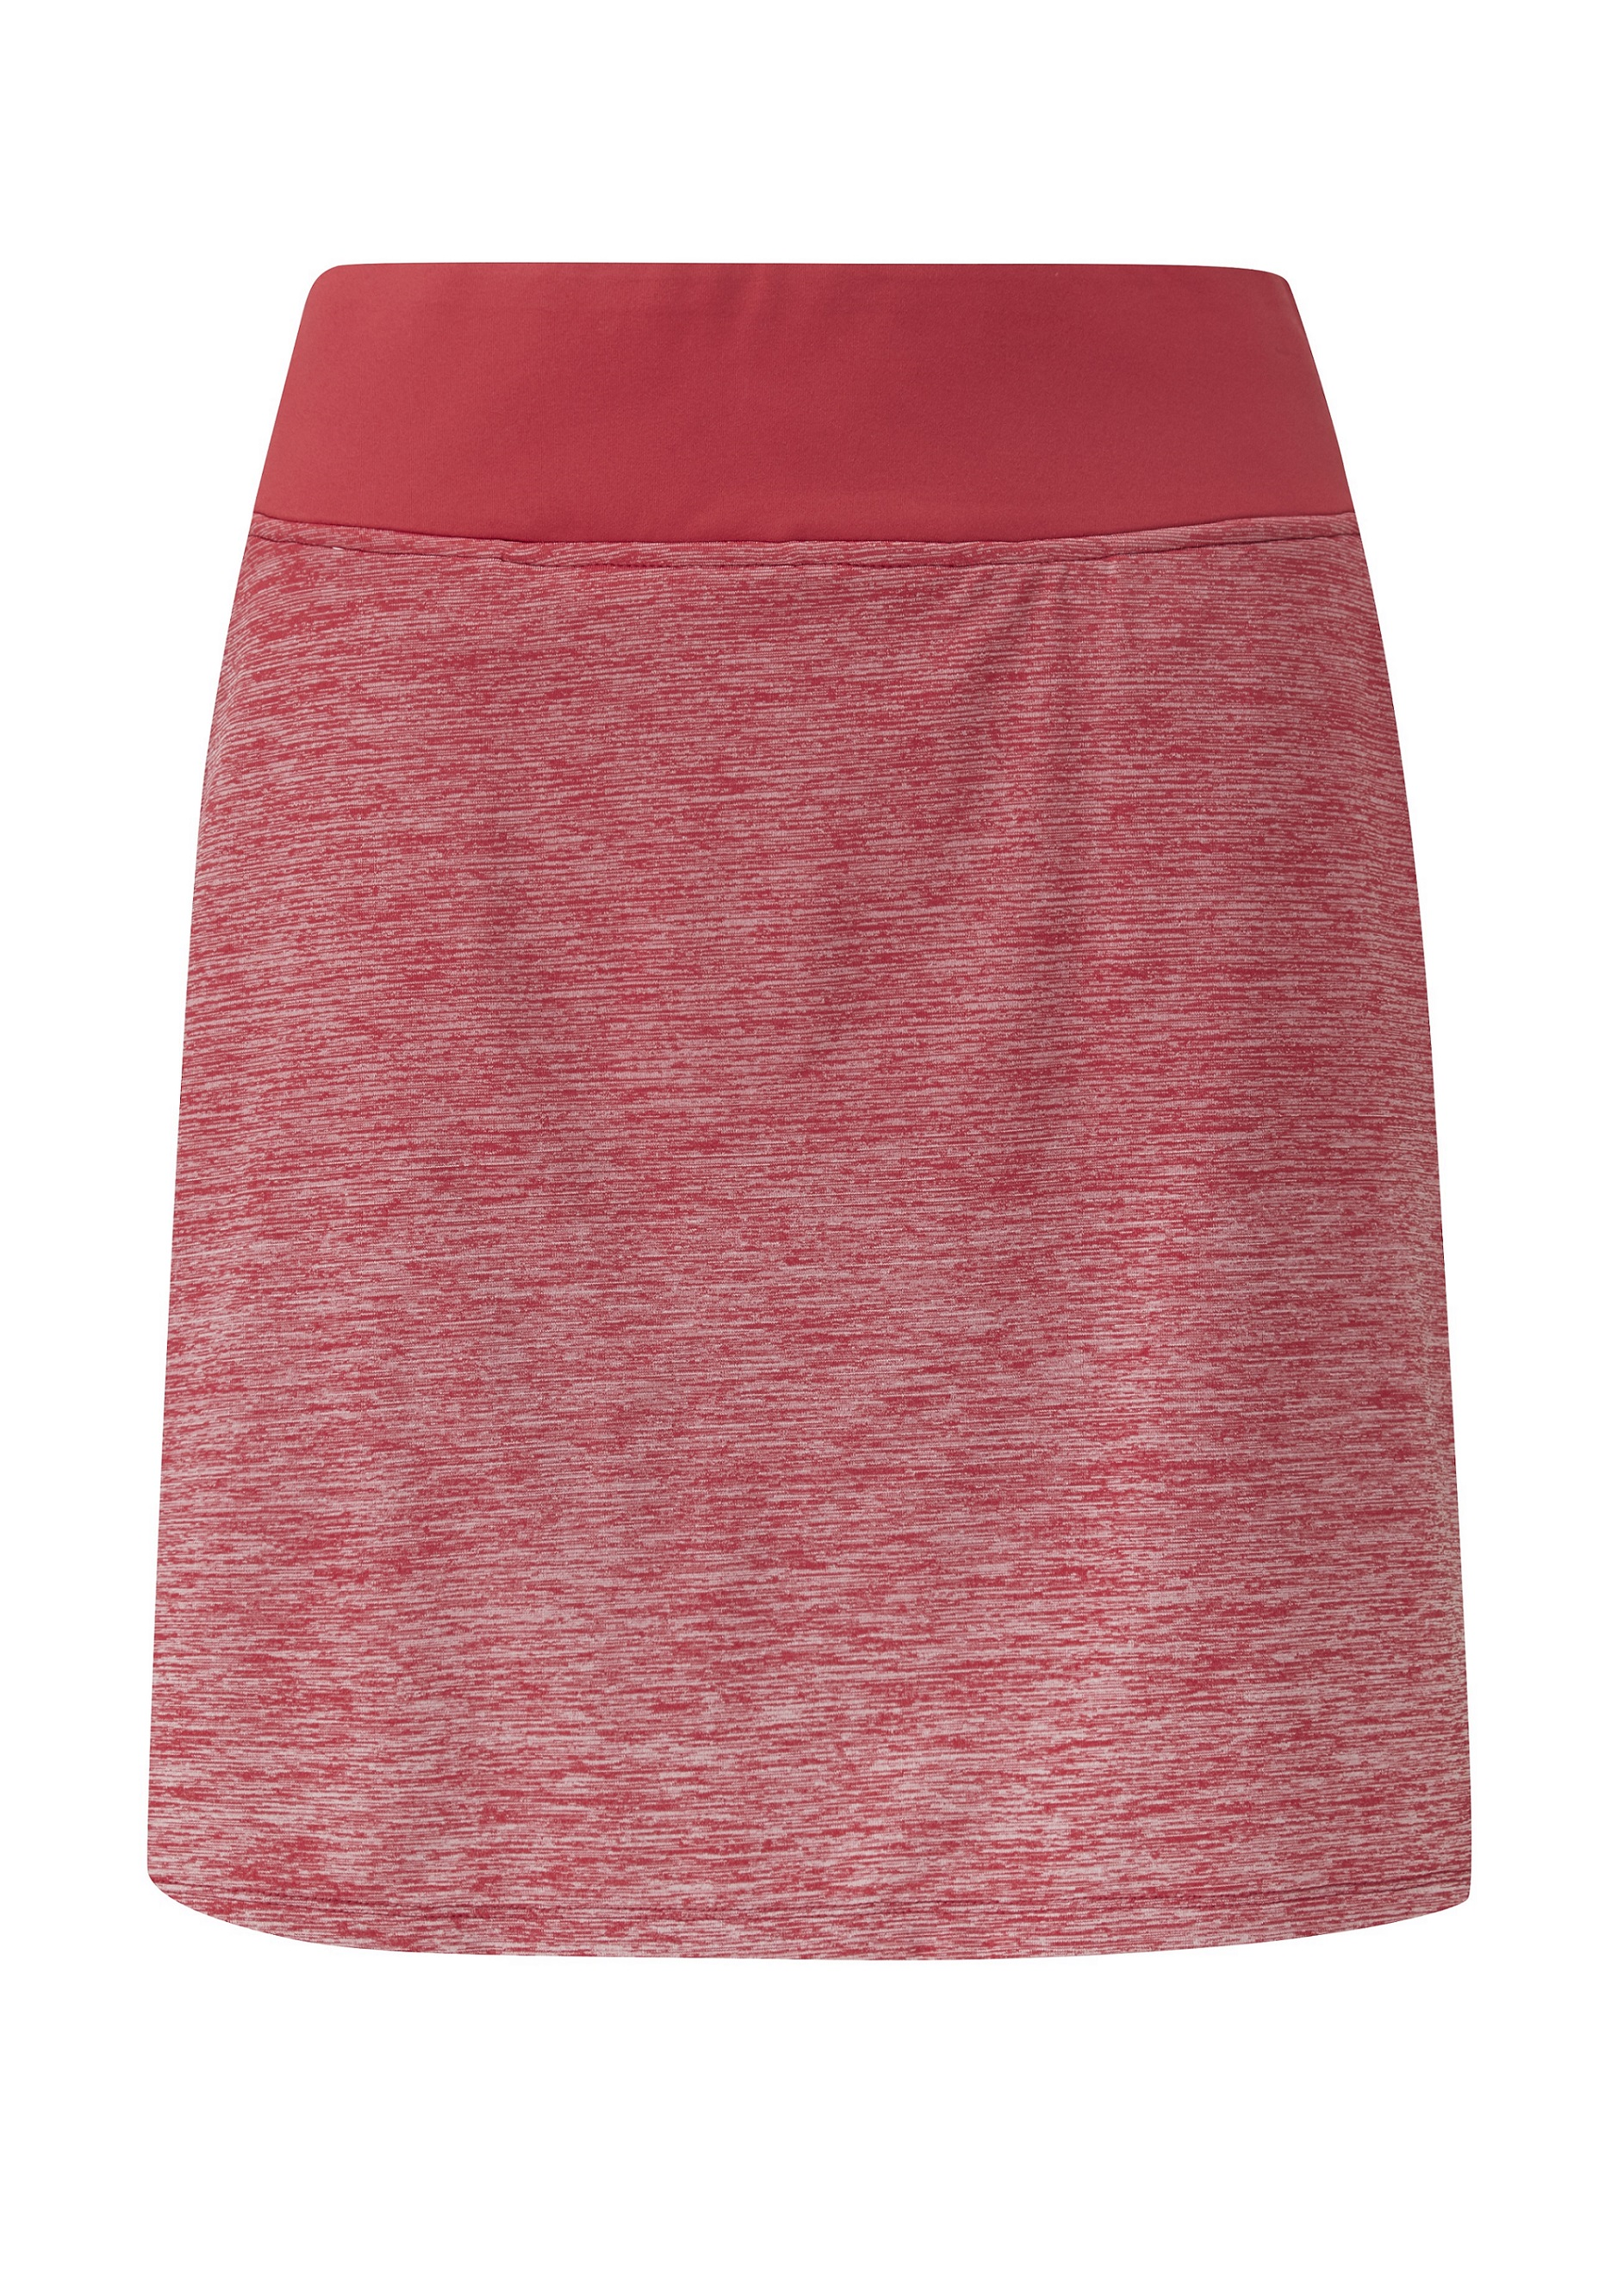 Svalkande vår/sommar-kollektioner från Ping - Vita. Pull-on, yarn-dyed gradient skort, featuring an inner short and two front pockets. Engineered with moisture moving, quick drying and stretch properties.